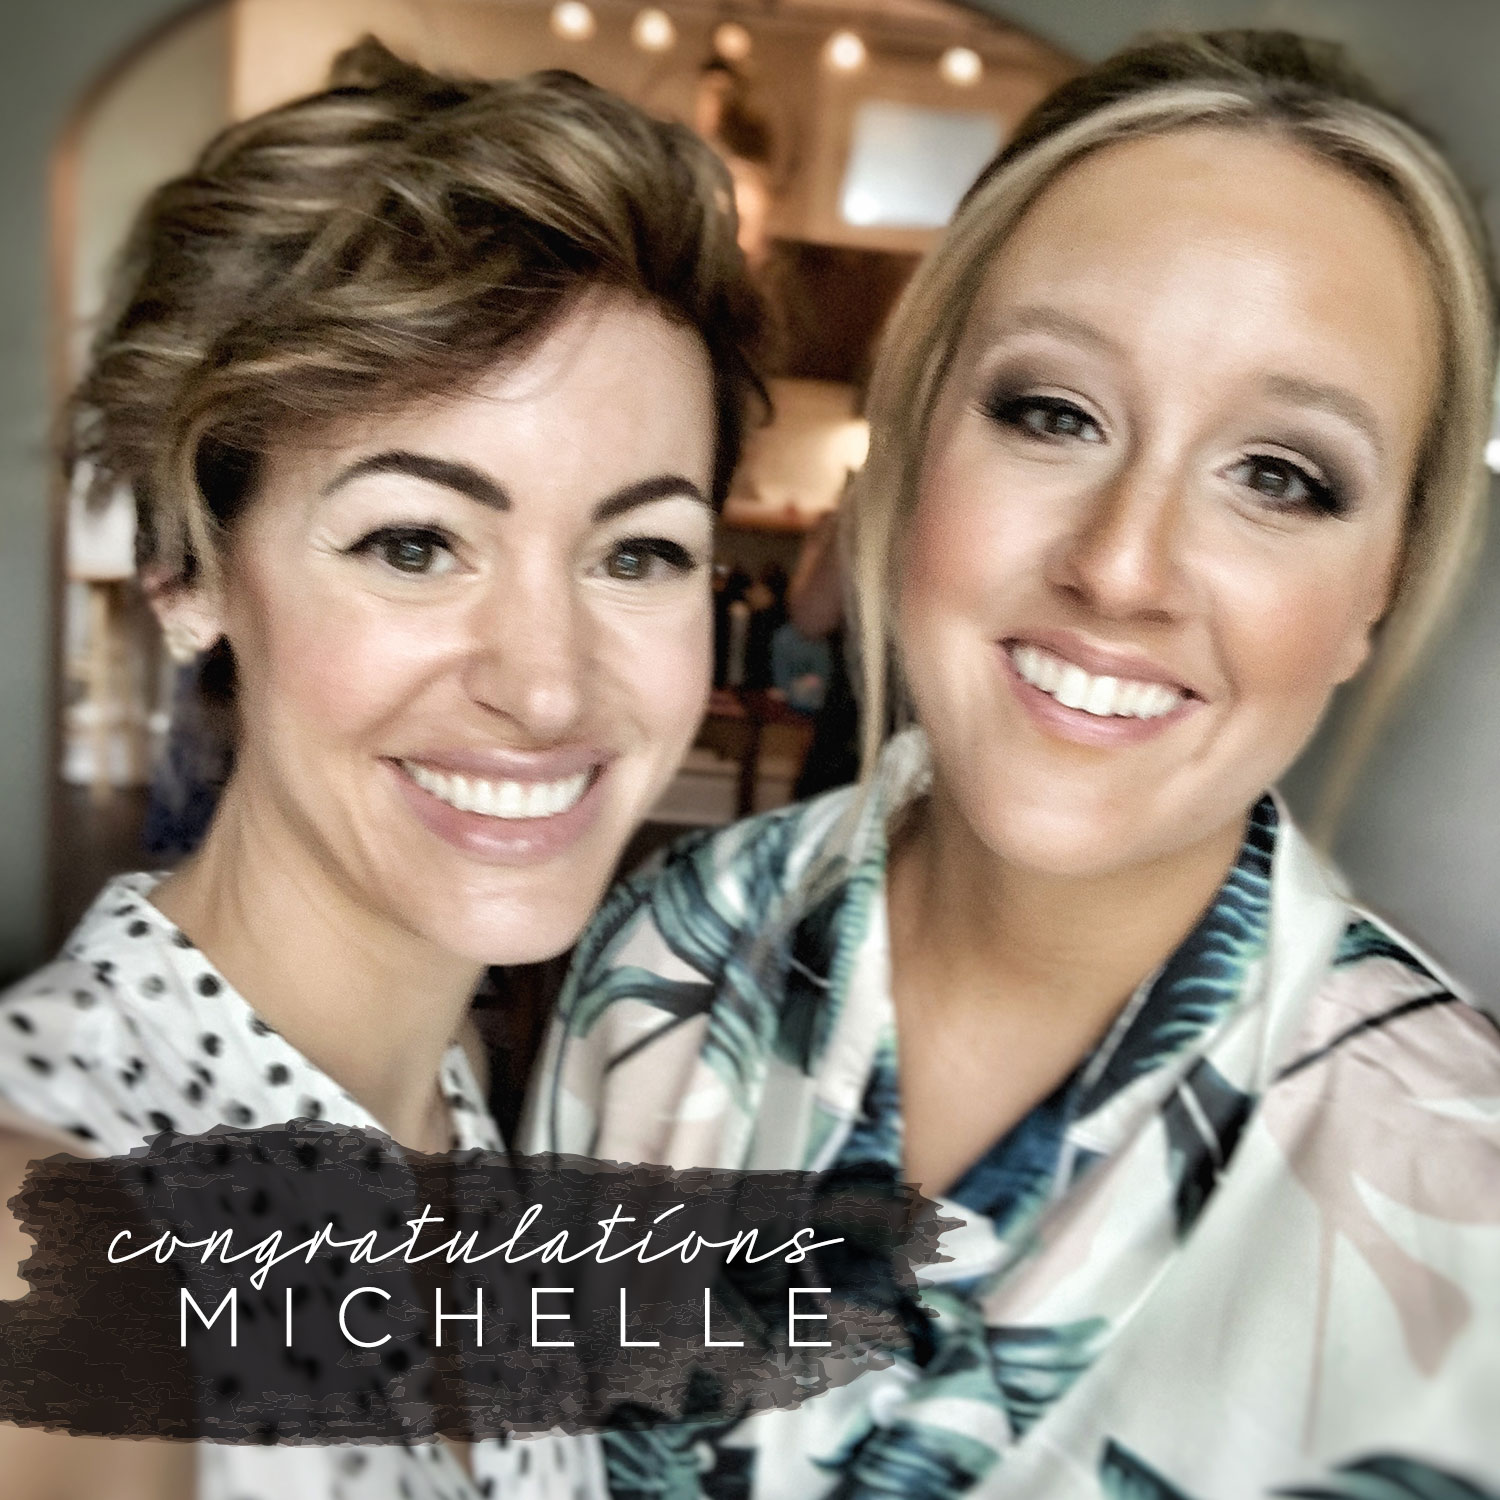 - We had so much fun working with Michelle this past weekend. Here is the list of linked products we used for her big day.